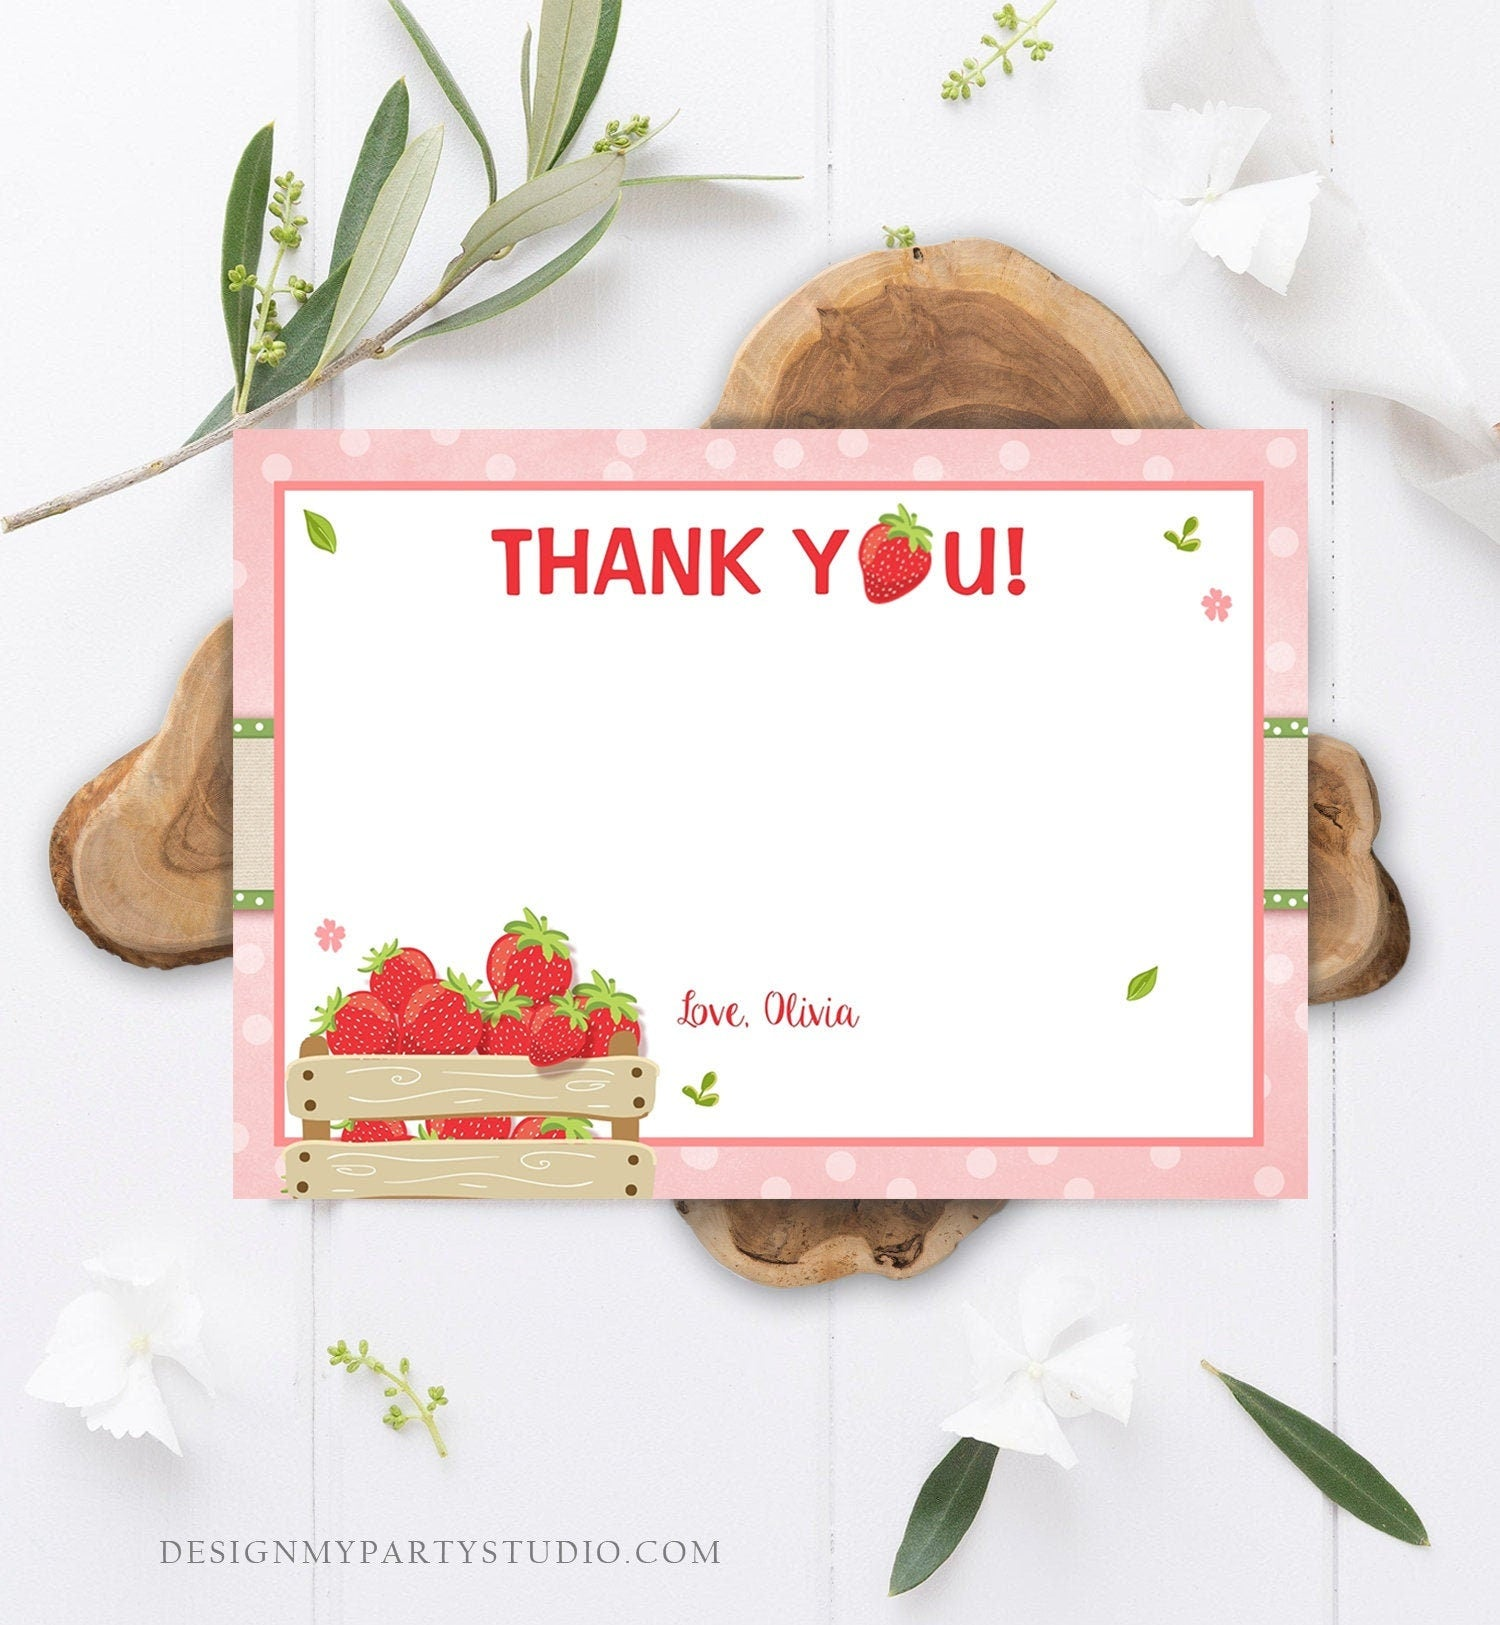 Editable Strawberry Thank You Card Birthday Strawberry Birthday Farmers Market Girl Berry Sweet Download Printable Template Corjl 0091